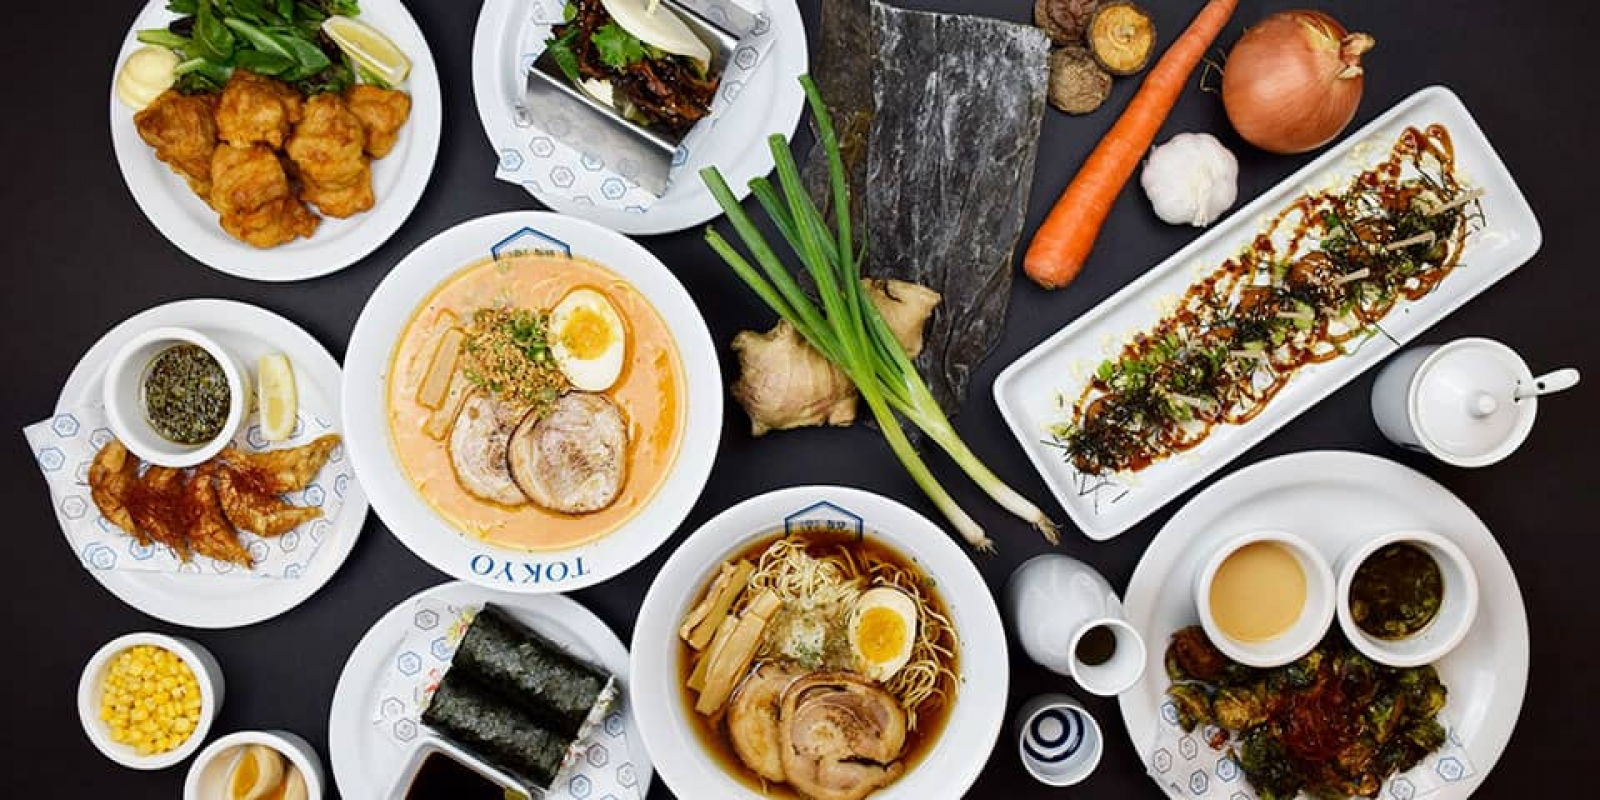 Food image of RAKKAN RAMEN, top view of the group photo of foods and food materials